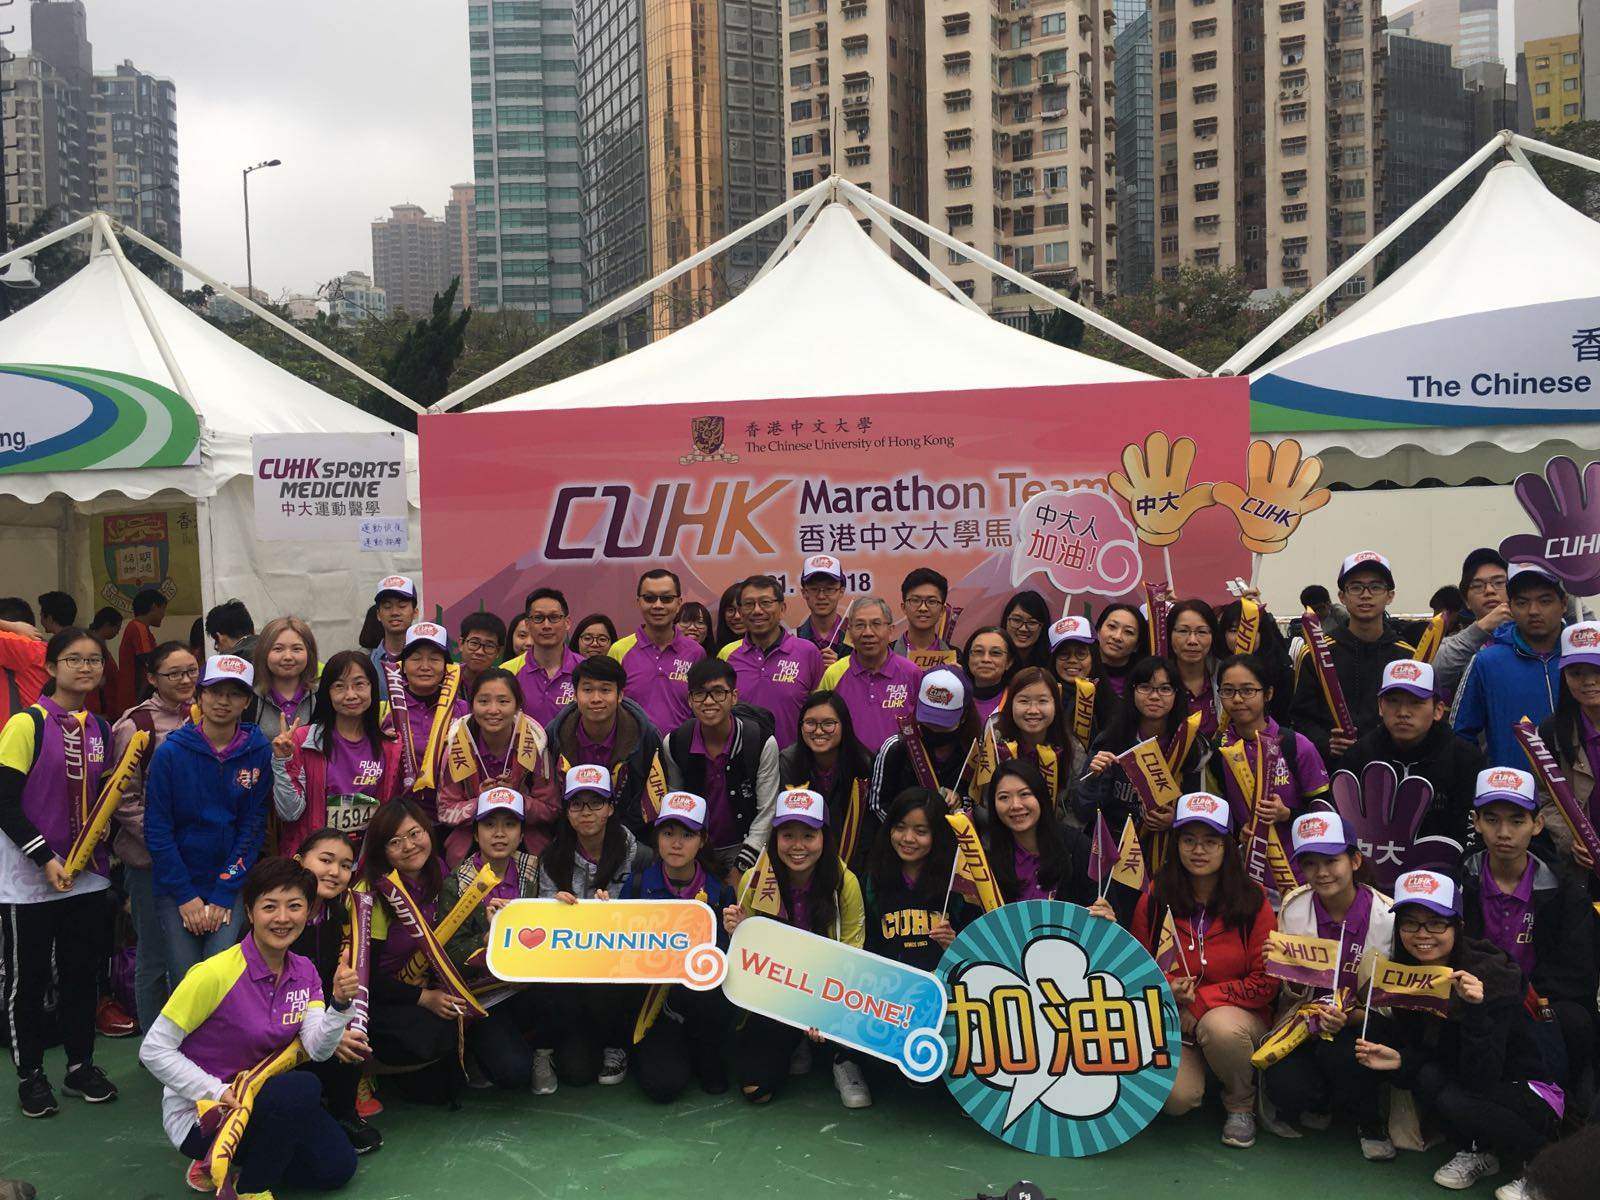 Professor Rocky S. Tuan, Vice-Chancellor and President of The Chinese University of Hong Kong (CUHK) shows his support for the CUHK marathon team participating in the Standard Chartered Hong Kong Marathon 2018 at  Victoria Park